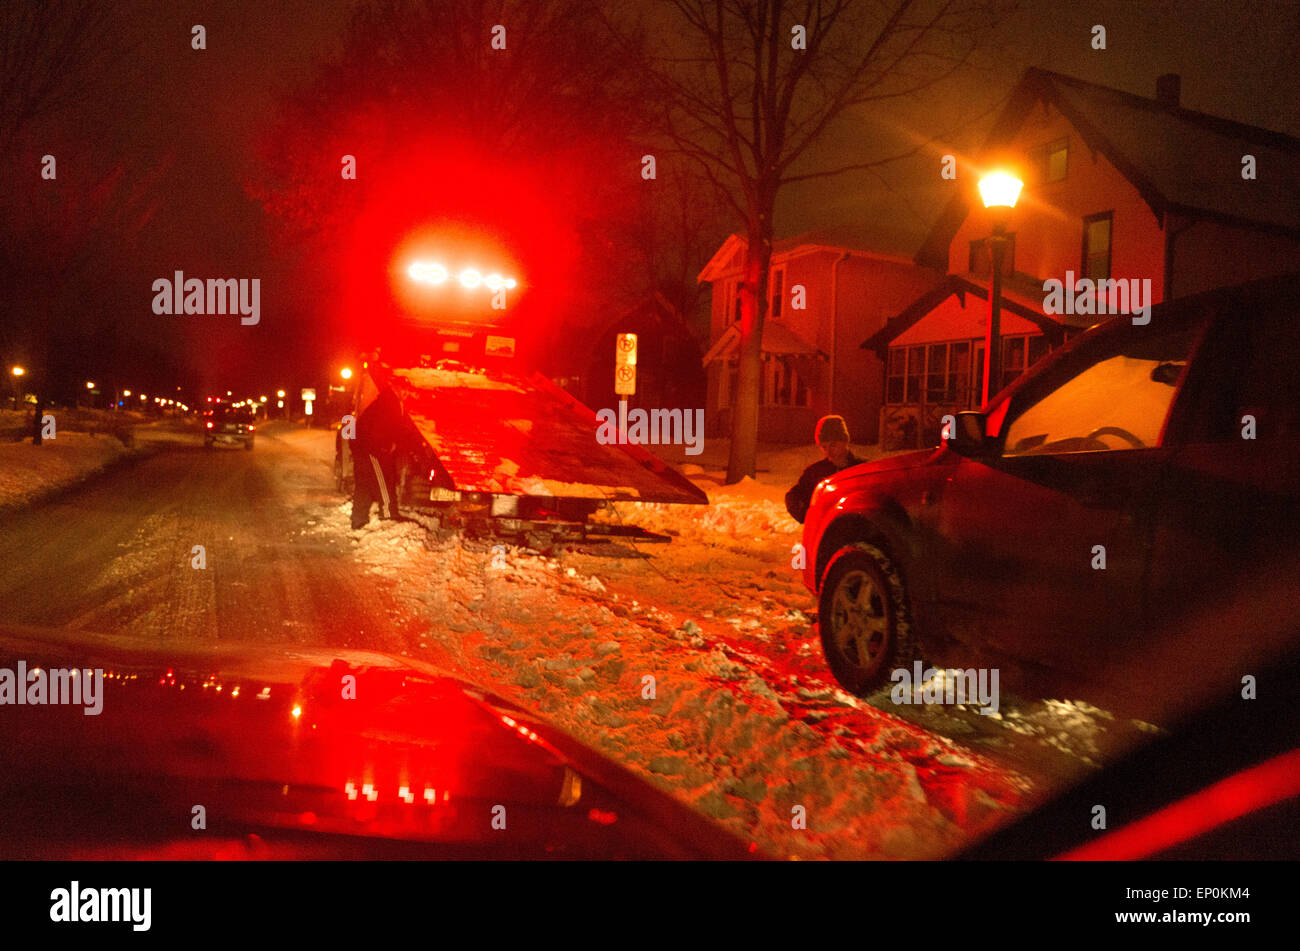 Tow truck ready to pick up illegally parked car at night after winter snowfall. St Paul Minnesota MN USA - Stock Image